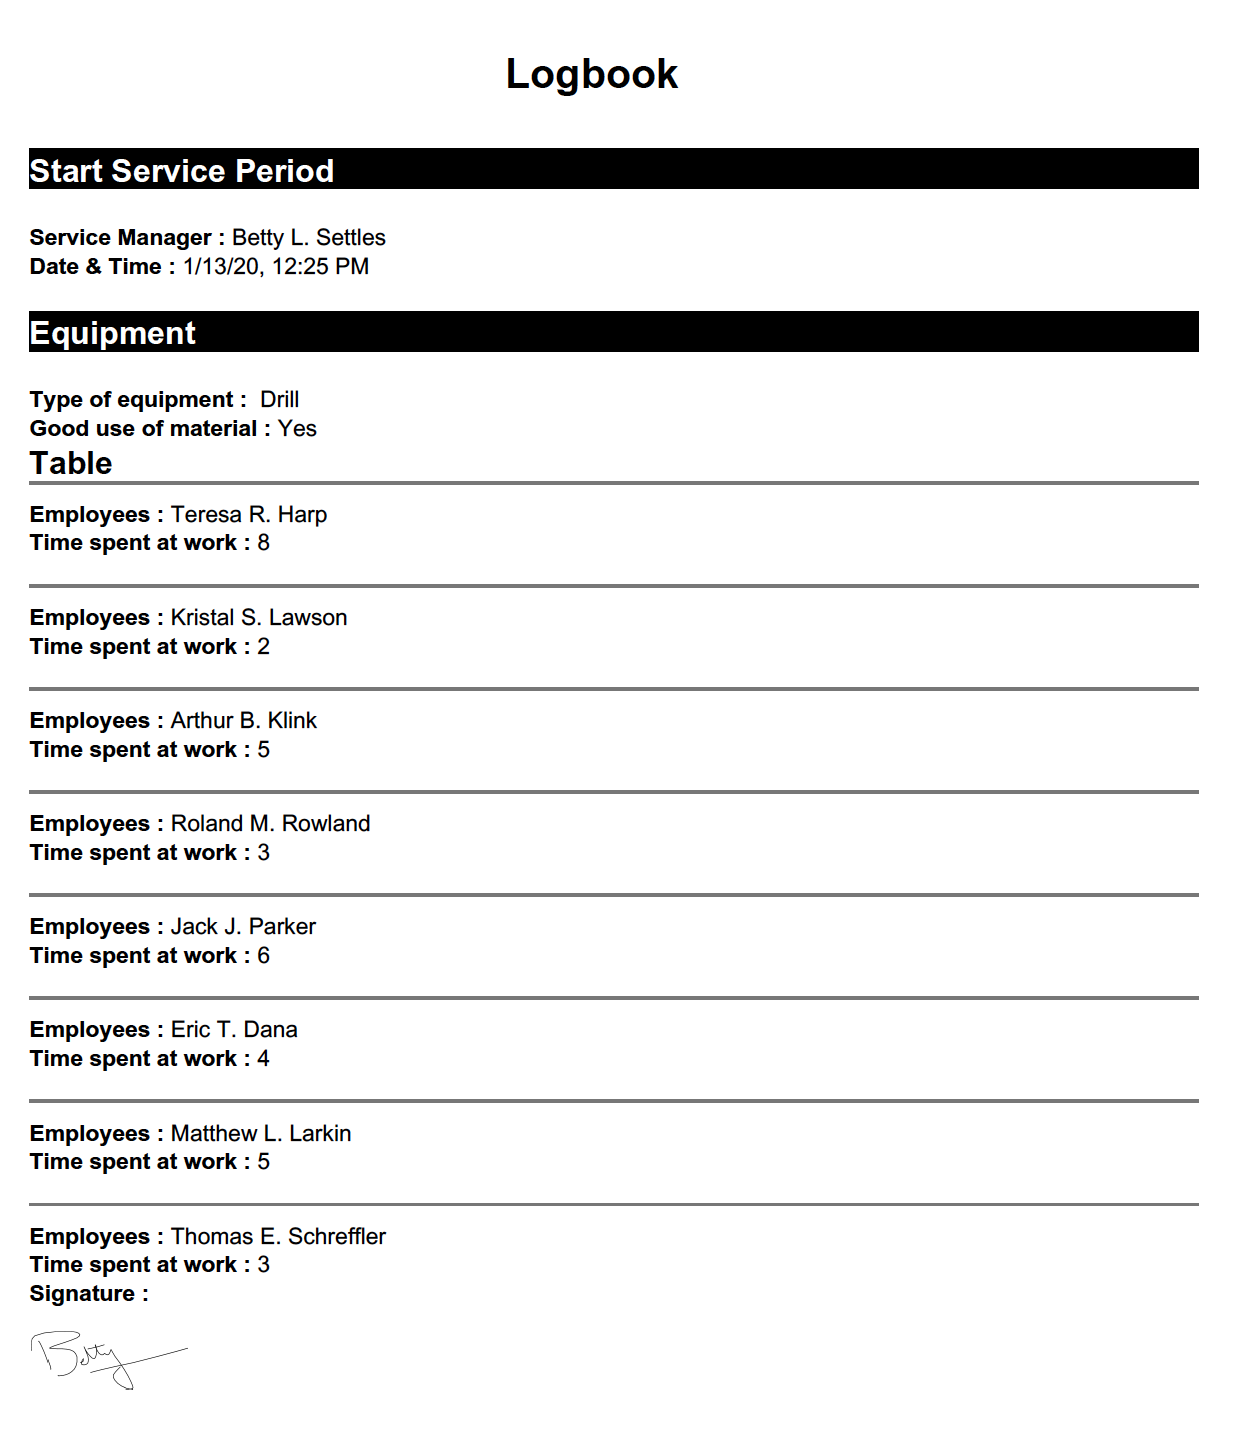 Security logbook template example with Kizeo Forms